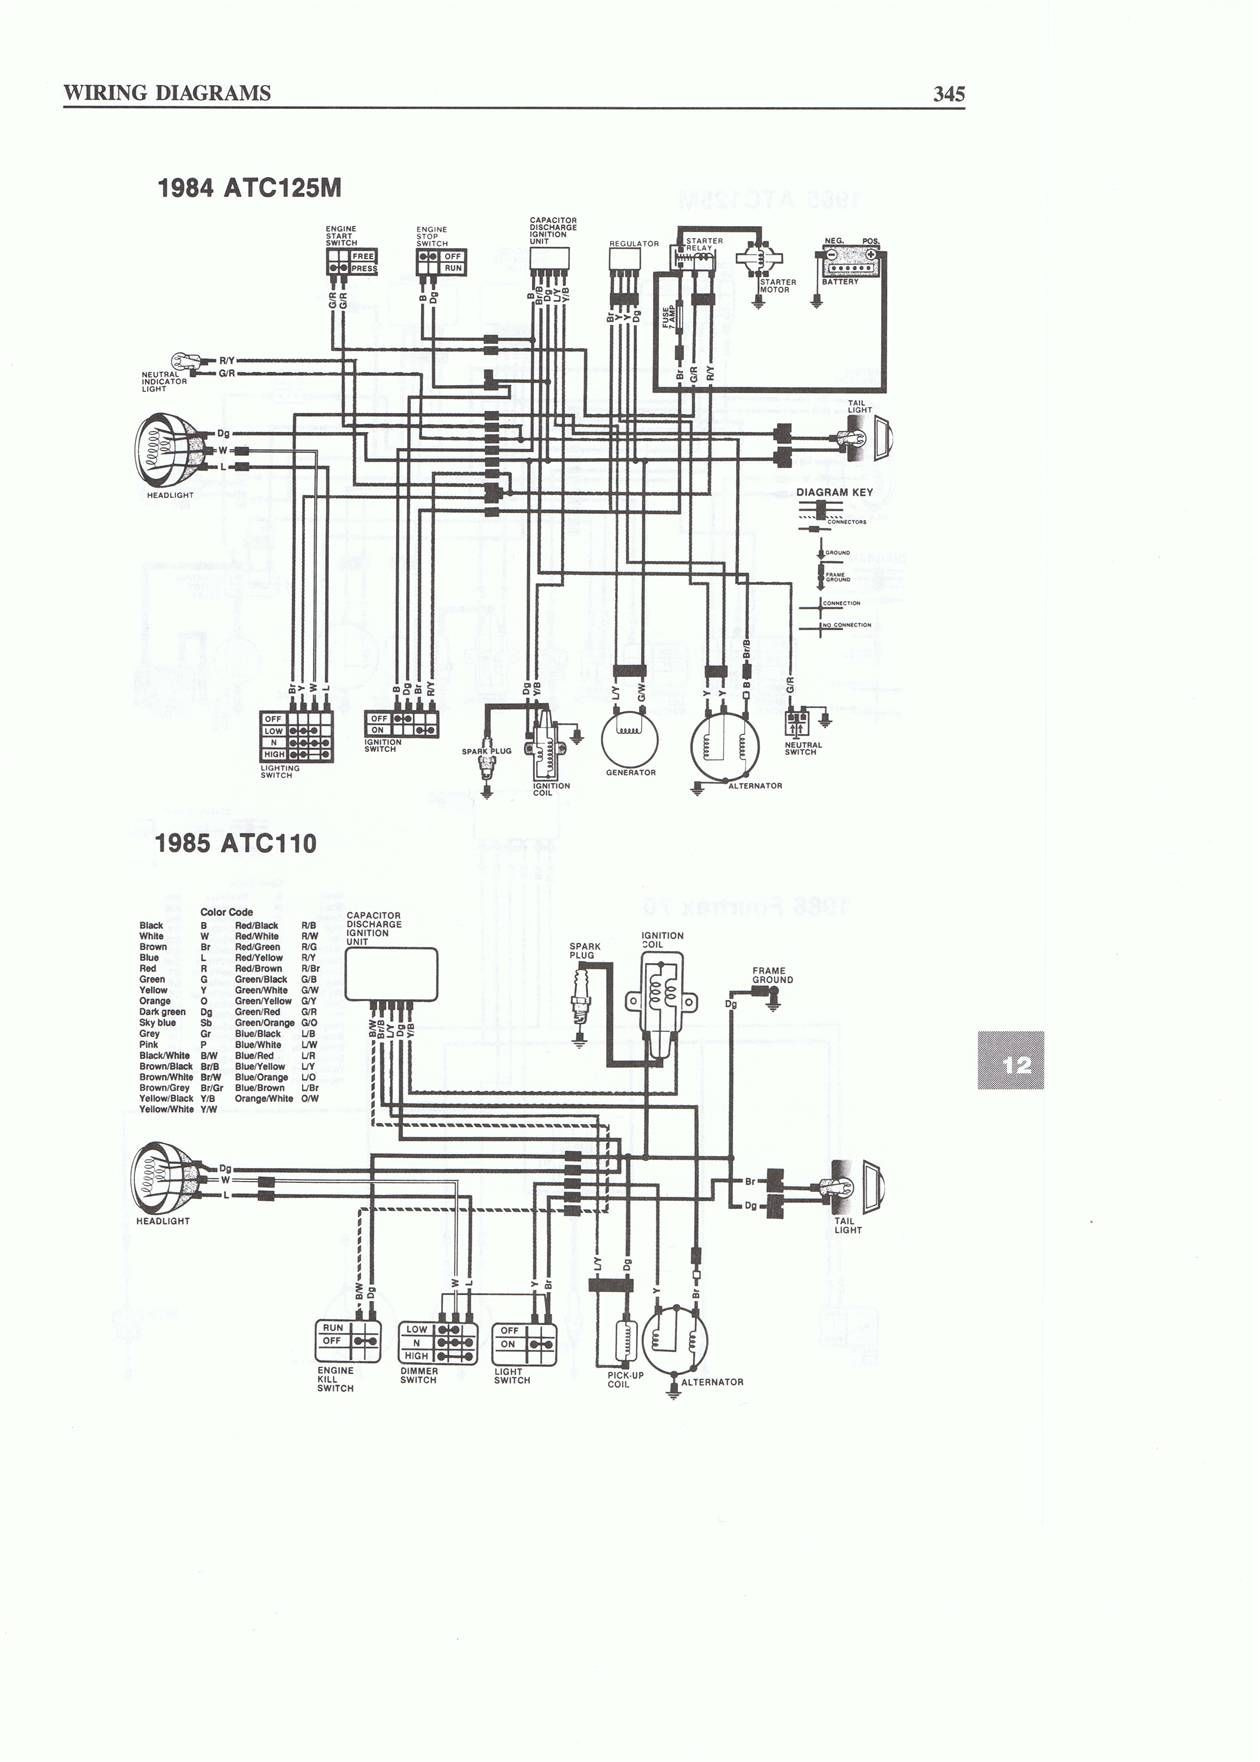 Loncin 110 Atv Wiring Diagram For Chinese With Facybulka Me ... on